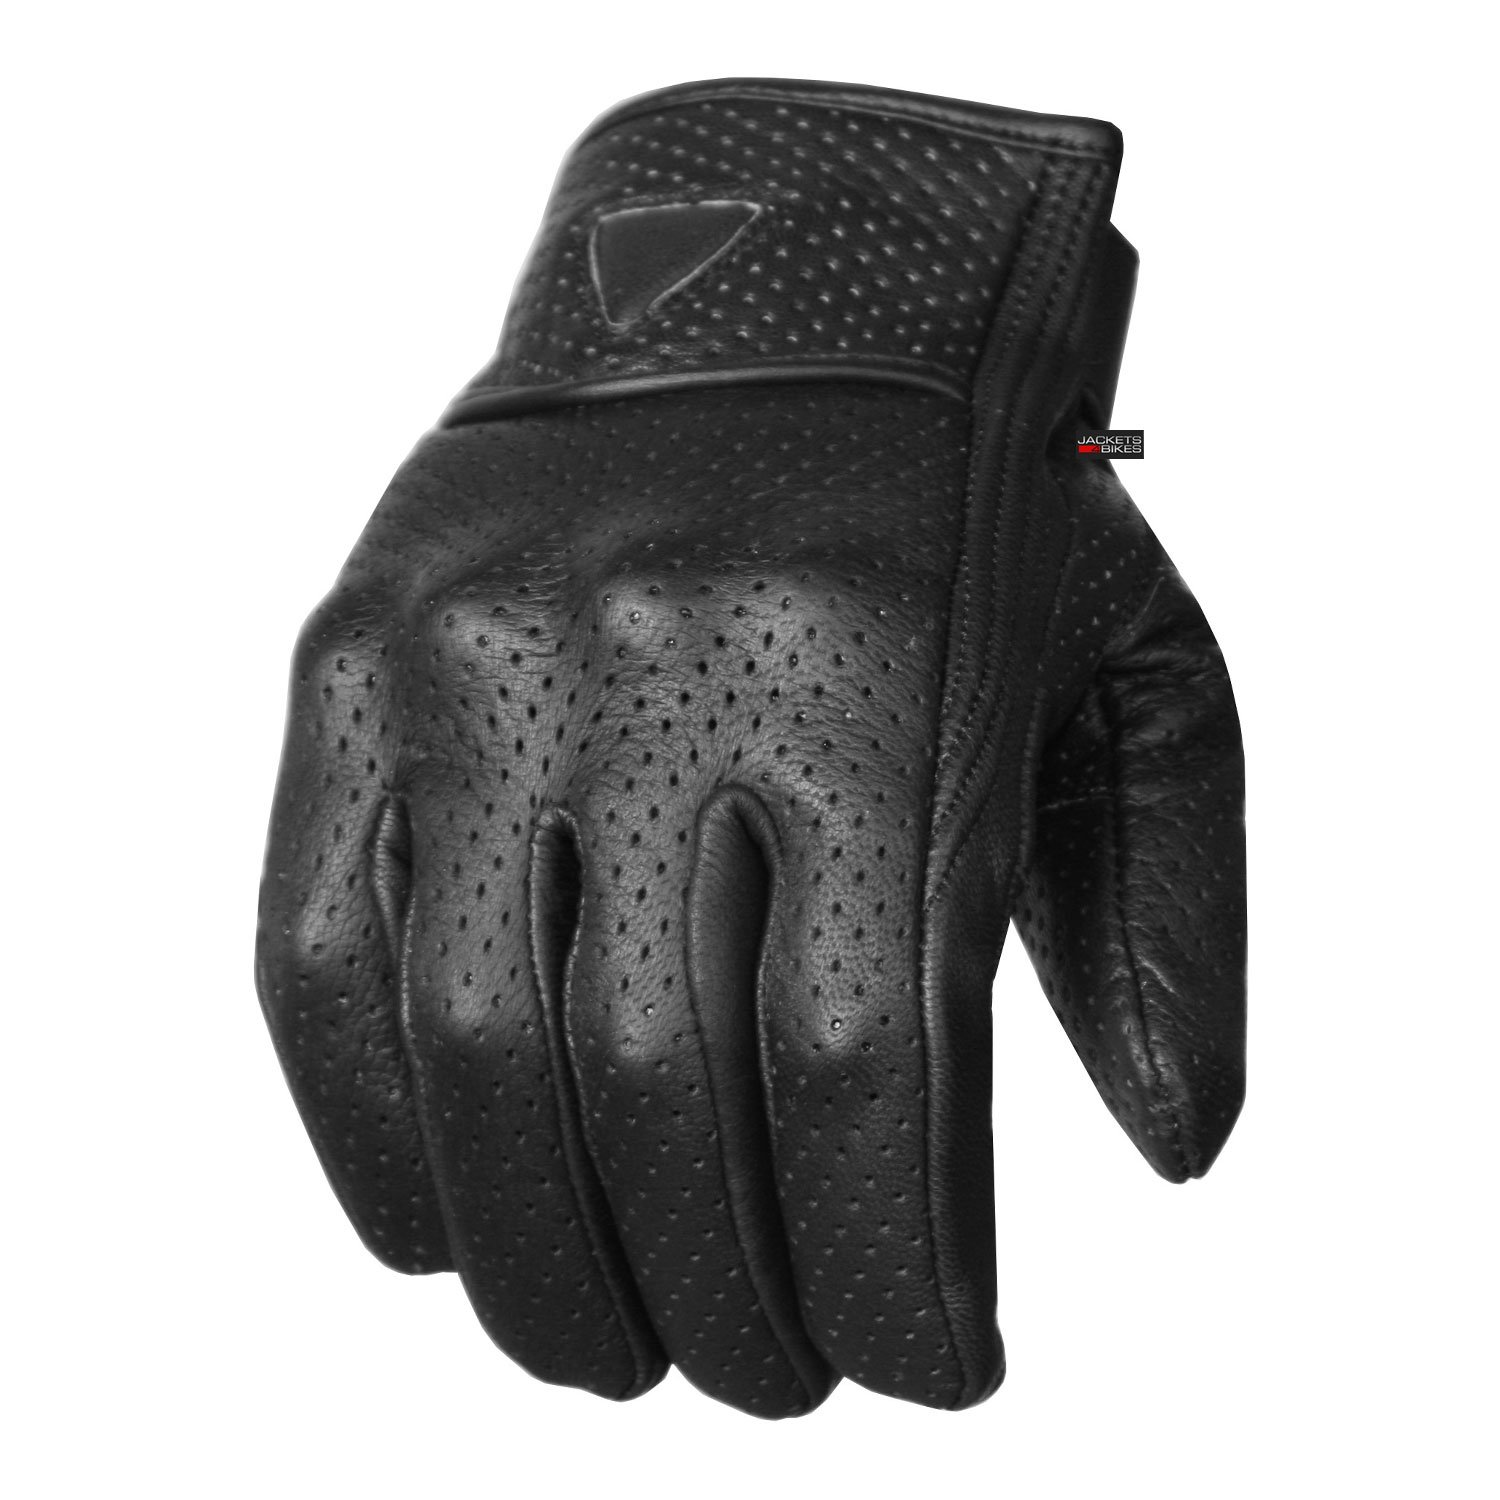 Premium Men's Motorcycle Leather Perforated Cruiser Protective Gel Padded Gloves XXL